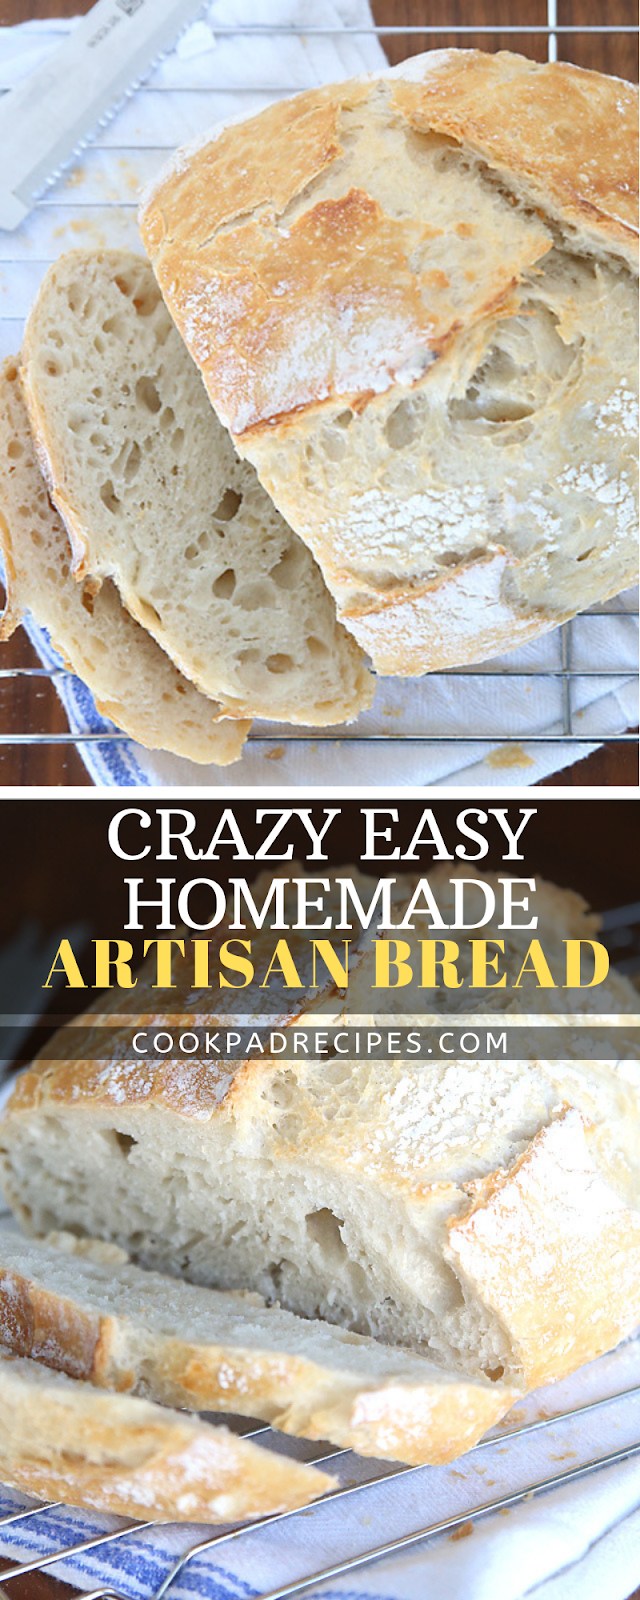 CRAZY EASY HOMEMADE ARTISAN BREAD